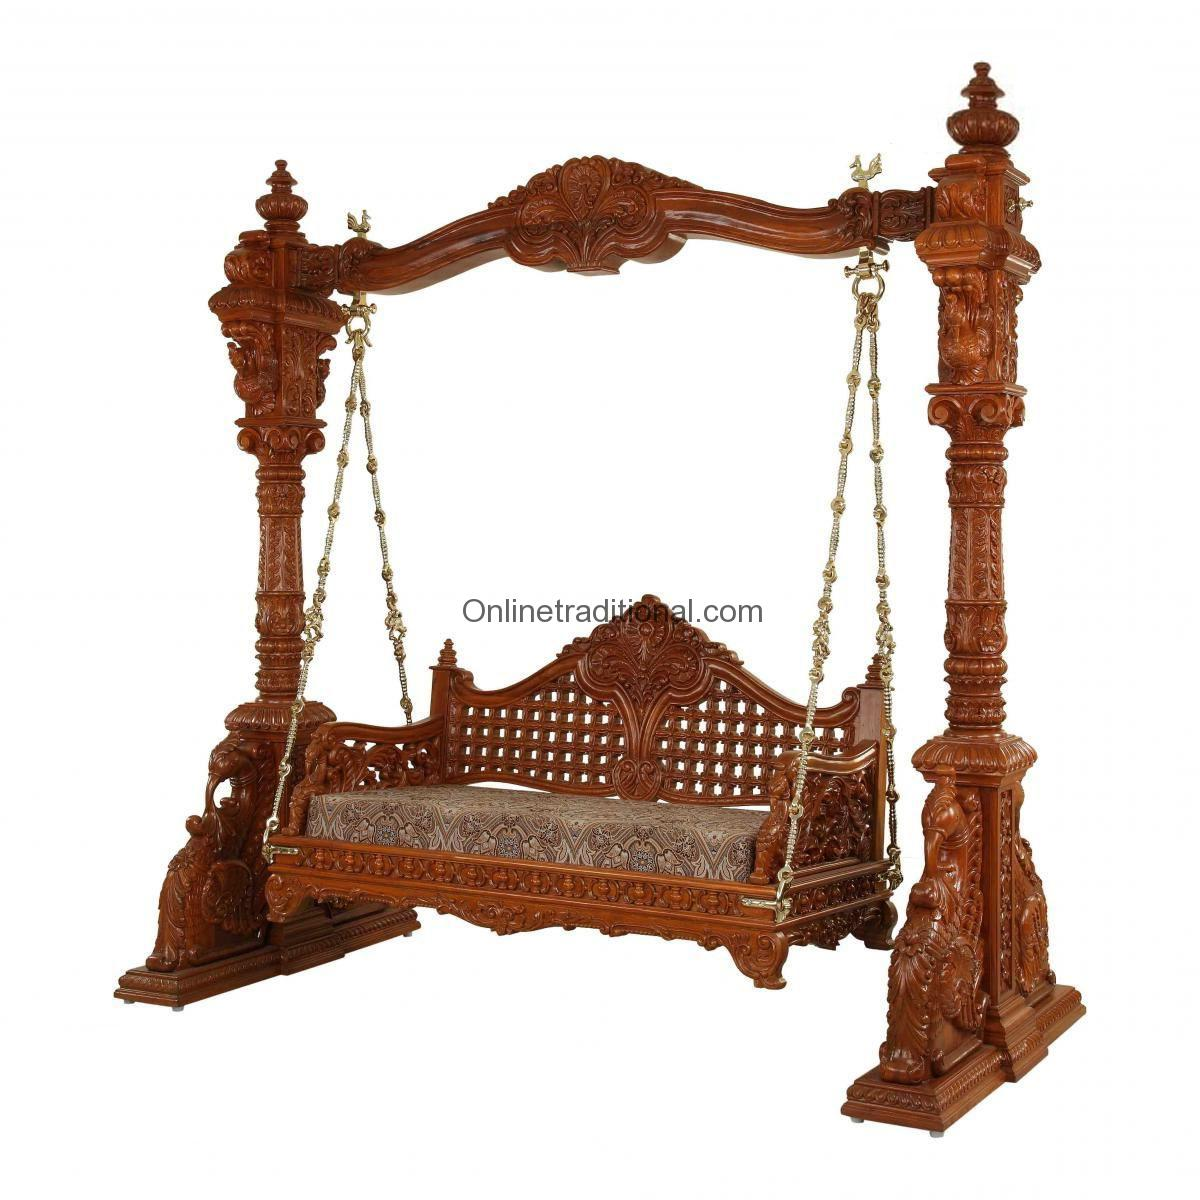 An Antique Carved Teak Swing Set By Pearlhandicrafts Com